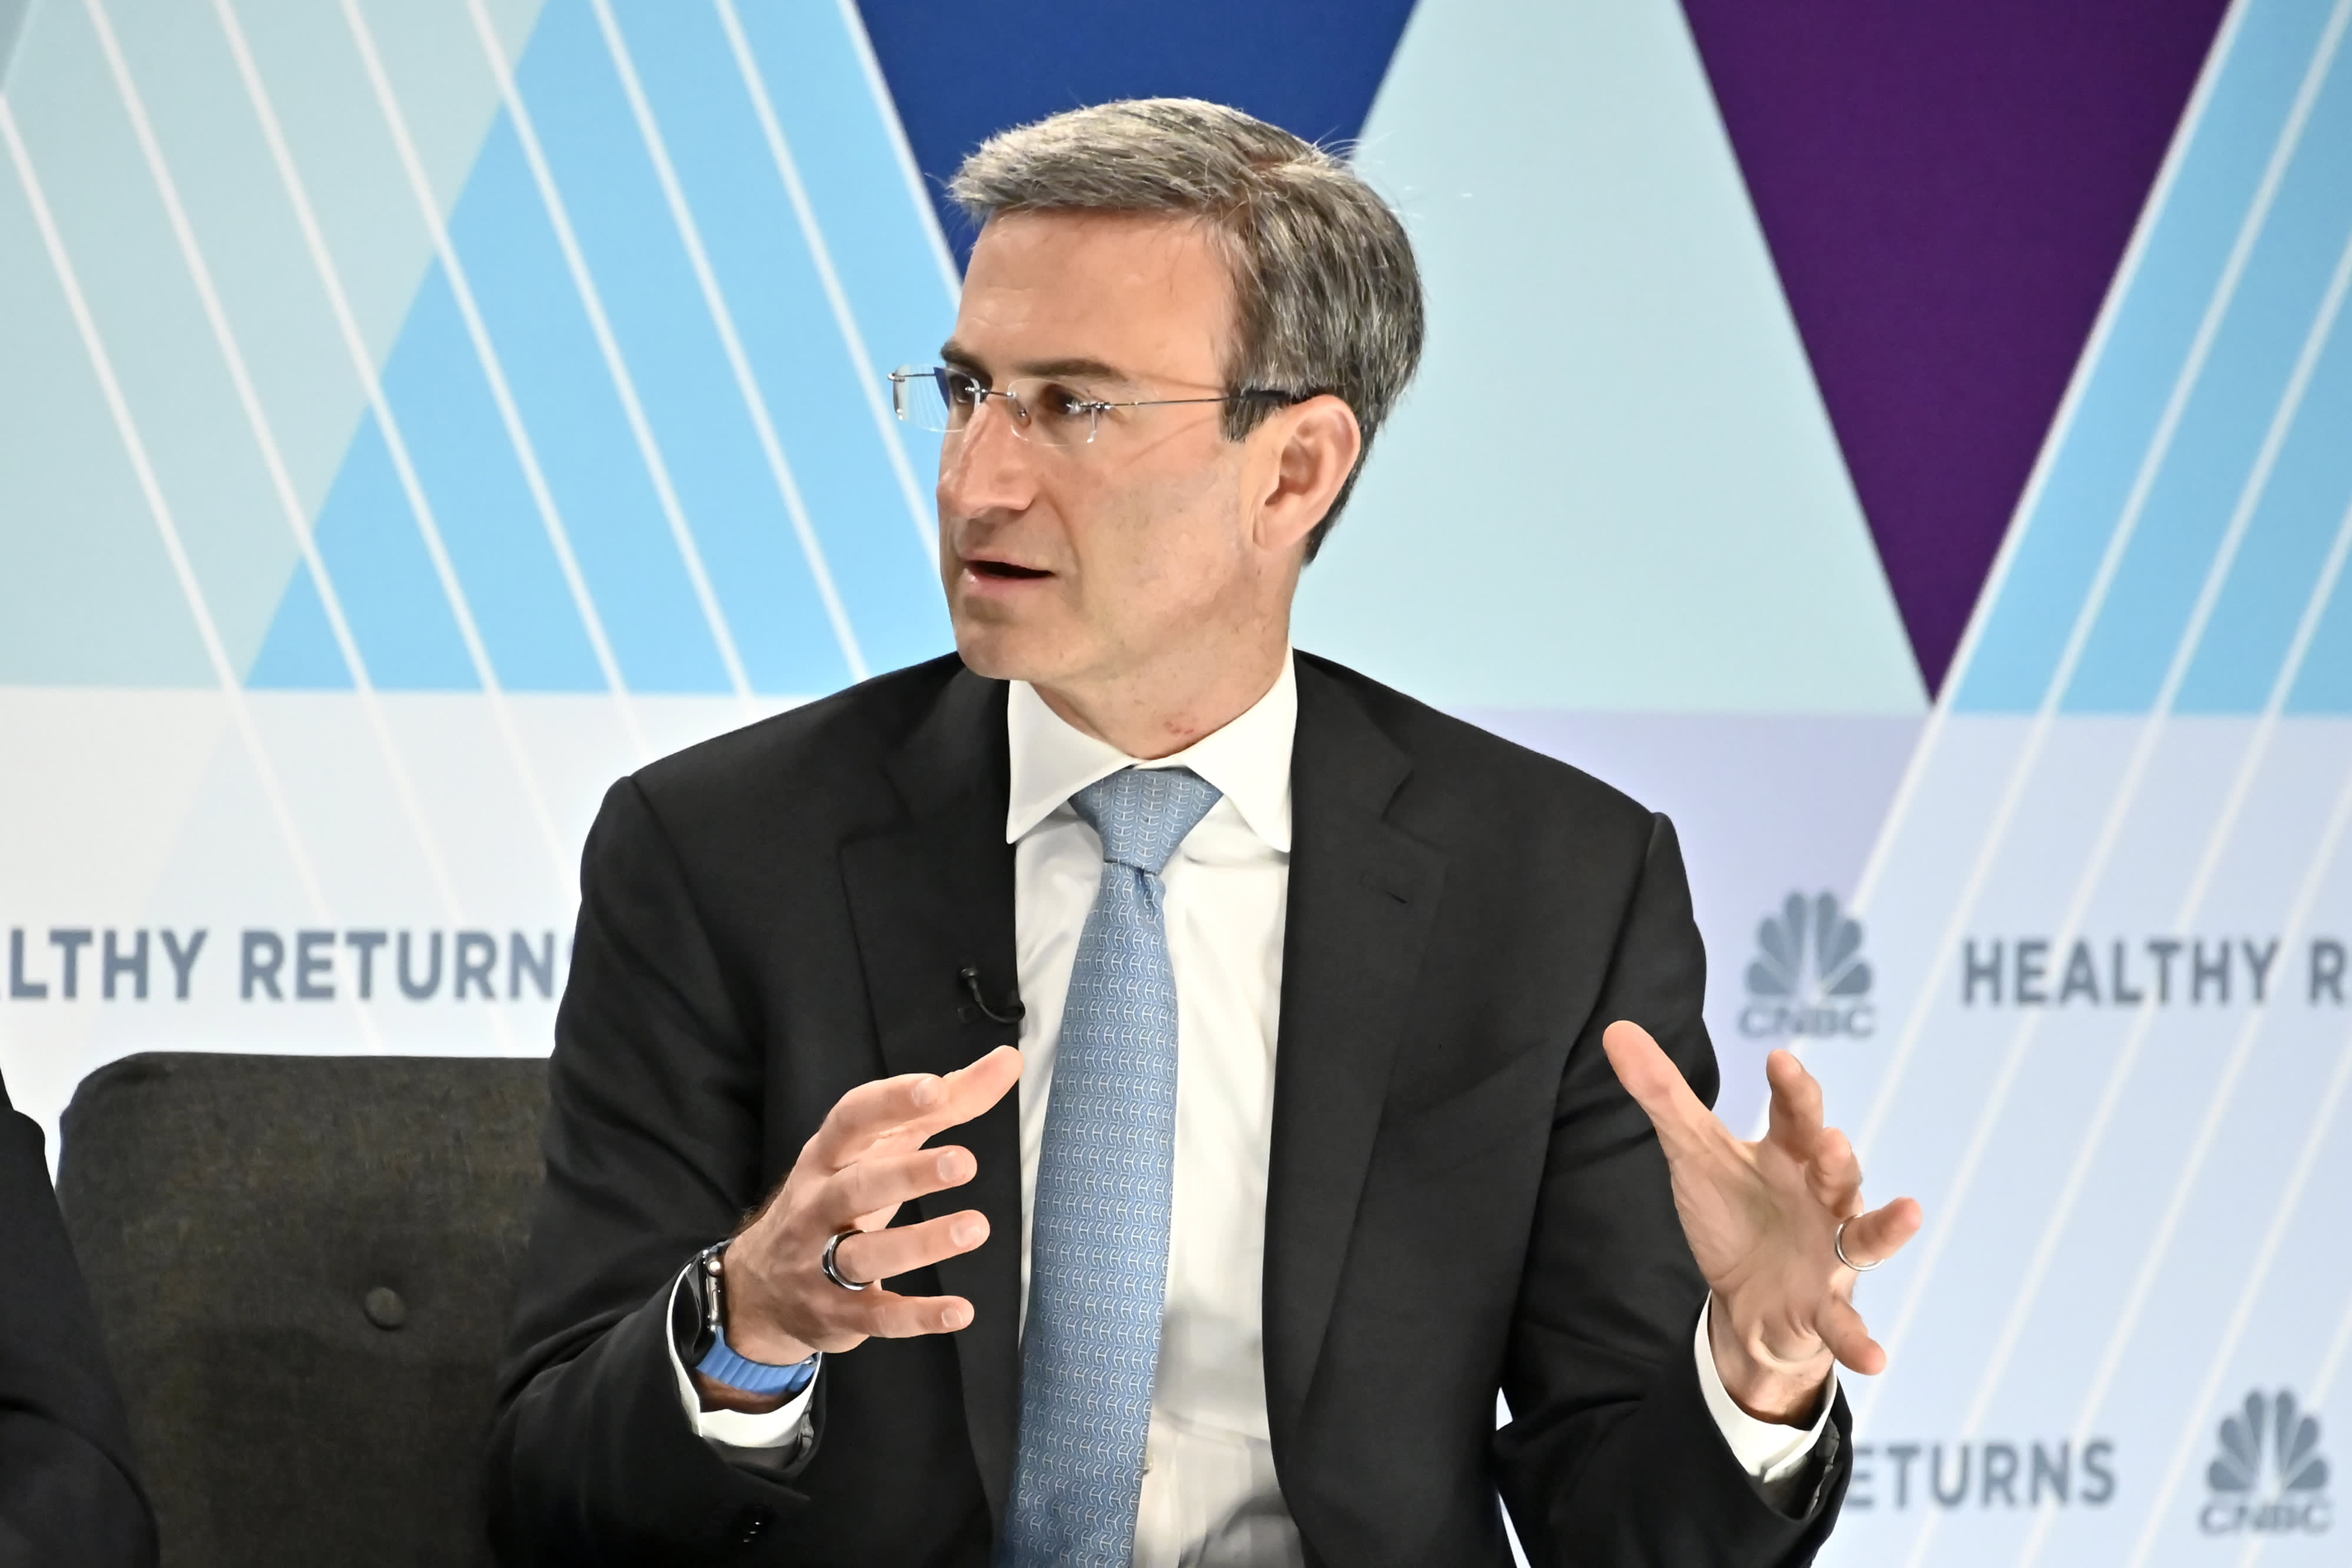 Peter Orszag, CEO of Financial Advisory at Lazard Ltd., speaking at the CNBC Healthy Returns conference in New York on May 21, 2019.